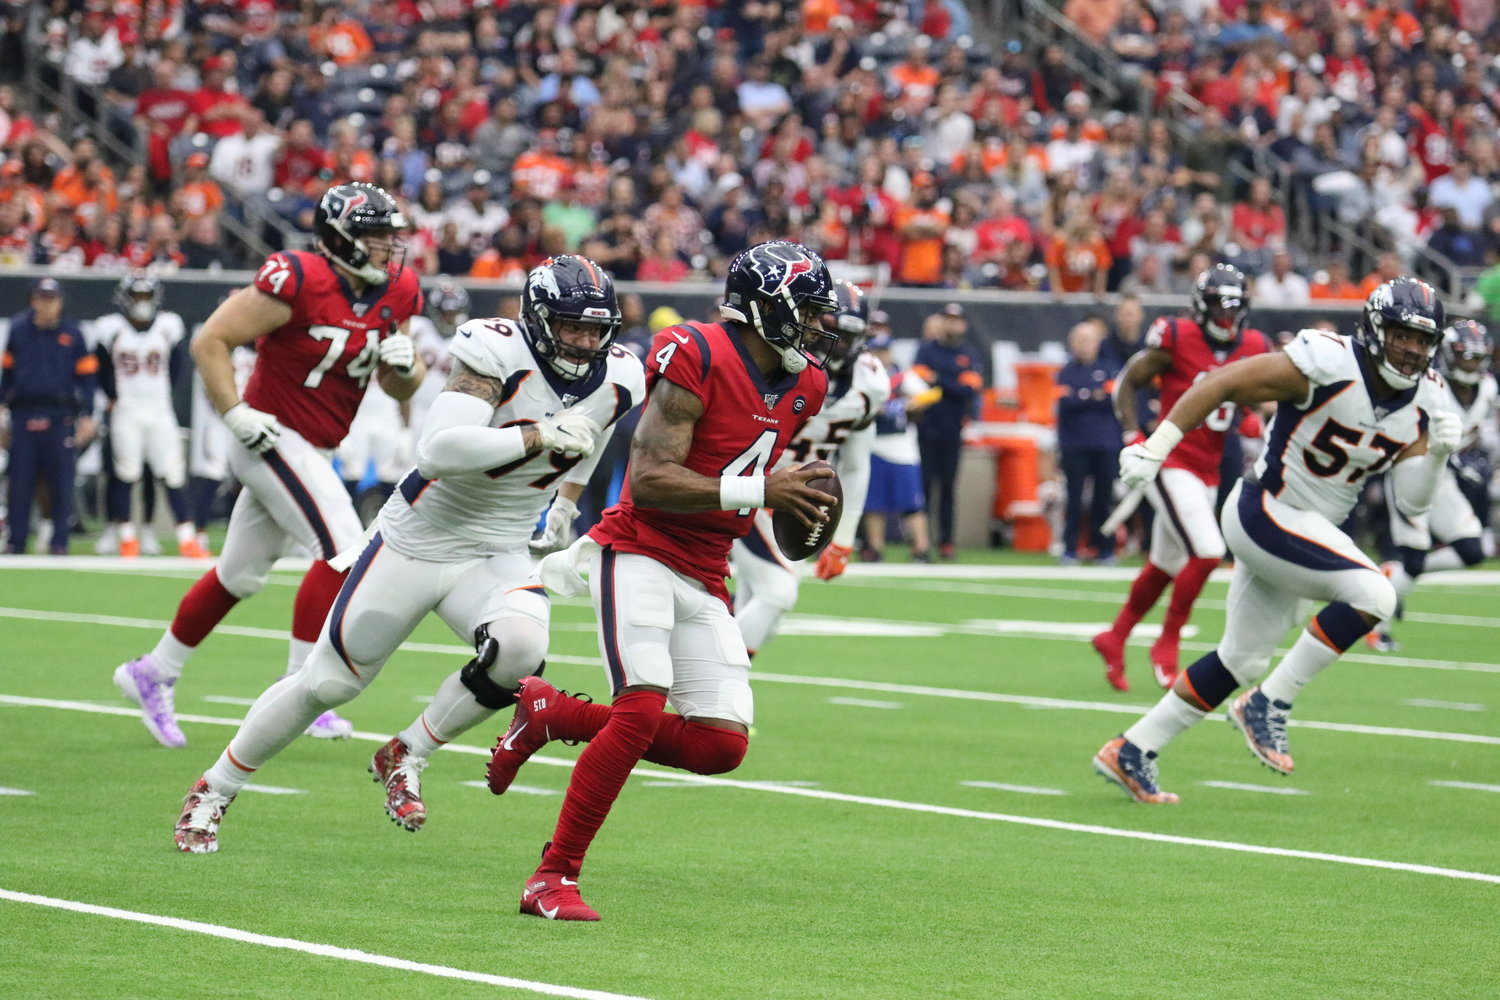 The Houston Texans' 2020 schedule was released Thursday night and features two primetime games, including a 2012 Thanksgiving rematch against the Detroit Lions. Pictured is Houston quarterback Deshaun Watson avoiding the Denver Broncos' defense in a non-conference game at NRG Stadium on Dec. 8. Denver won, 38-24.